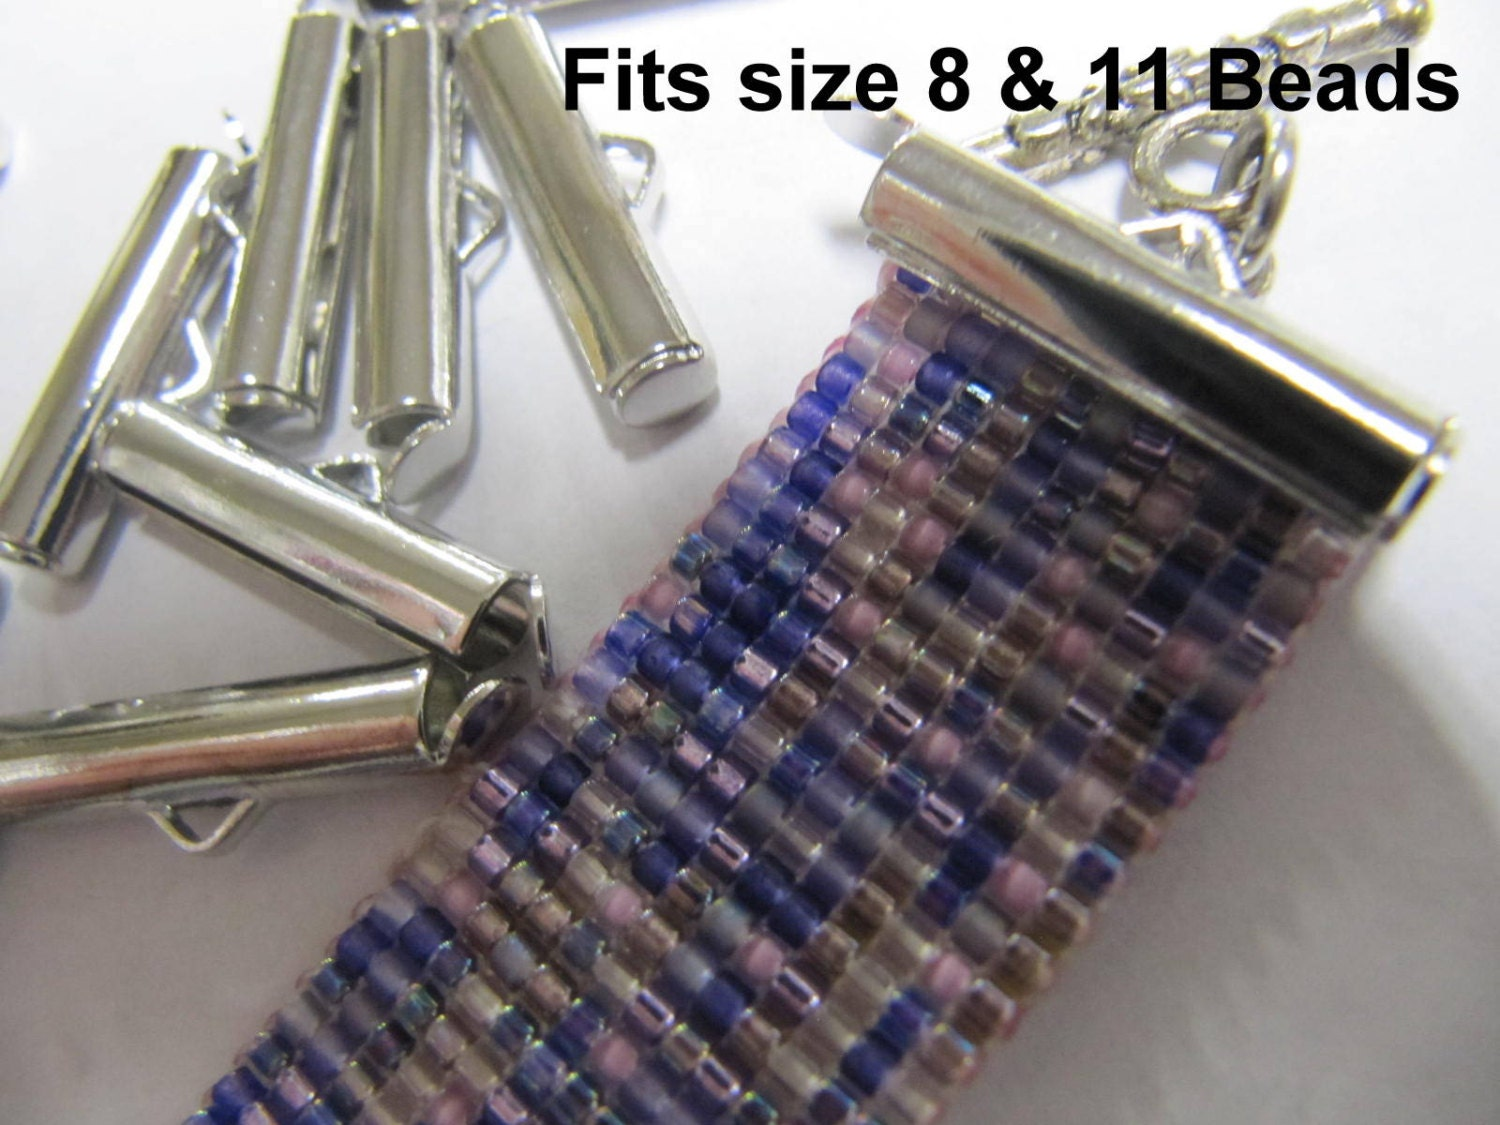 End Caps Slider Clasps, 3/4 inch Silver Color, Loom Bead Patterns, Loom Findings, 6 or 12 Pack, Fits Size 8 Or 11 Beads, Clean and Neat